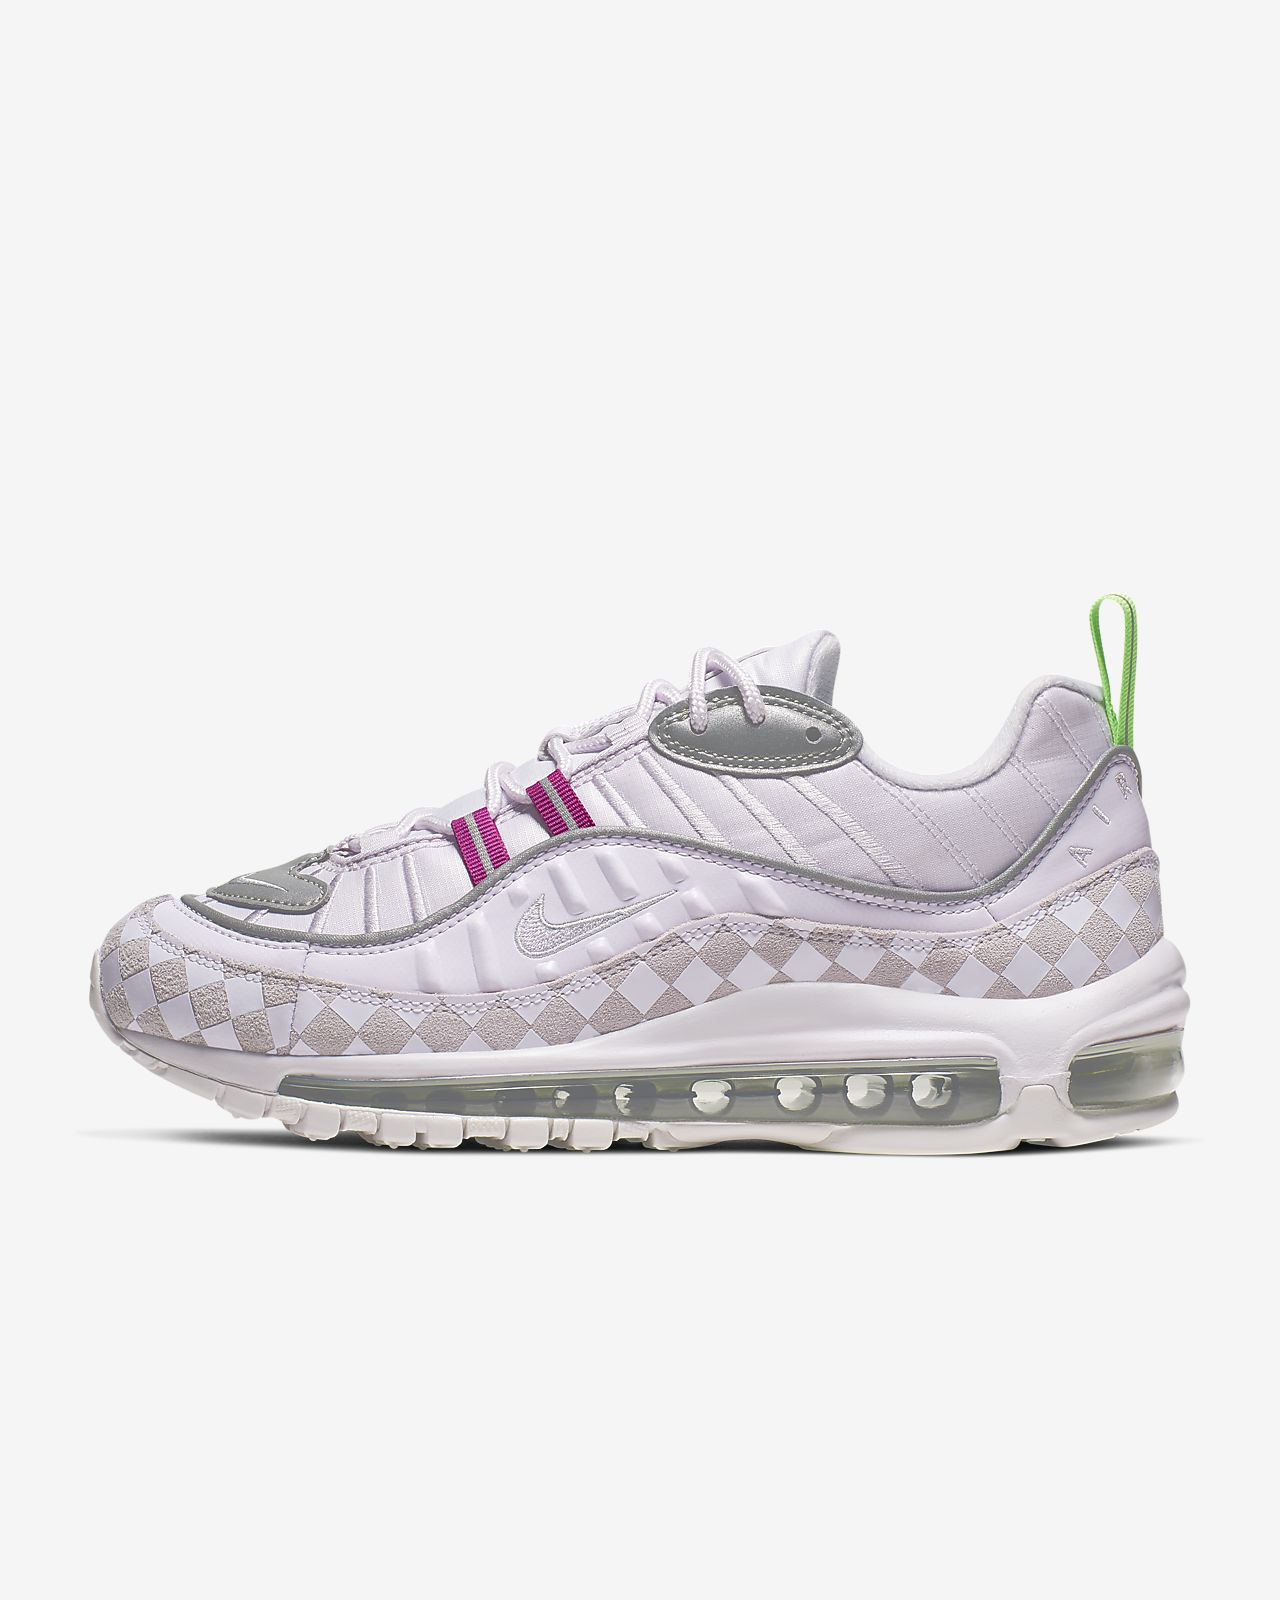 Nike Air Max 98 Damen-Trainingsschuh